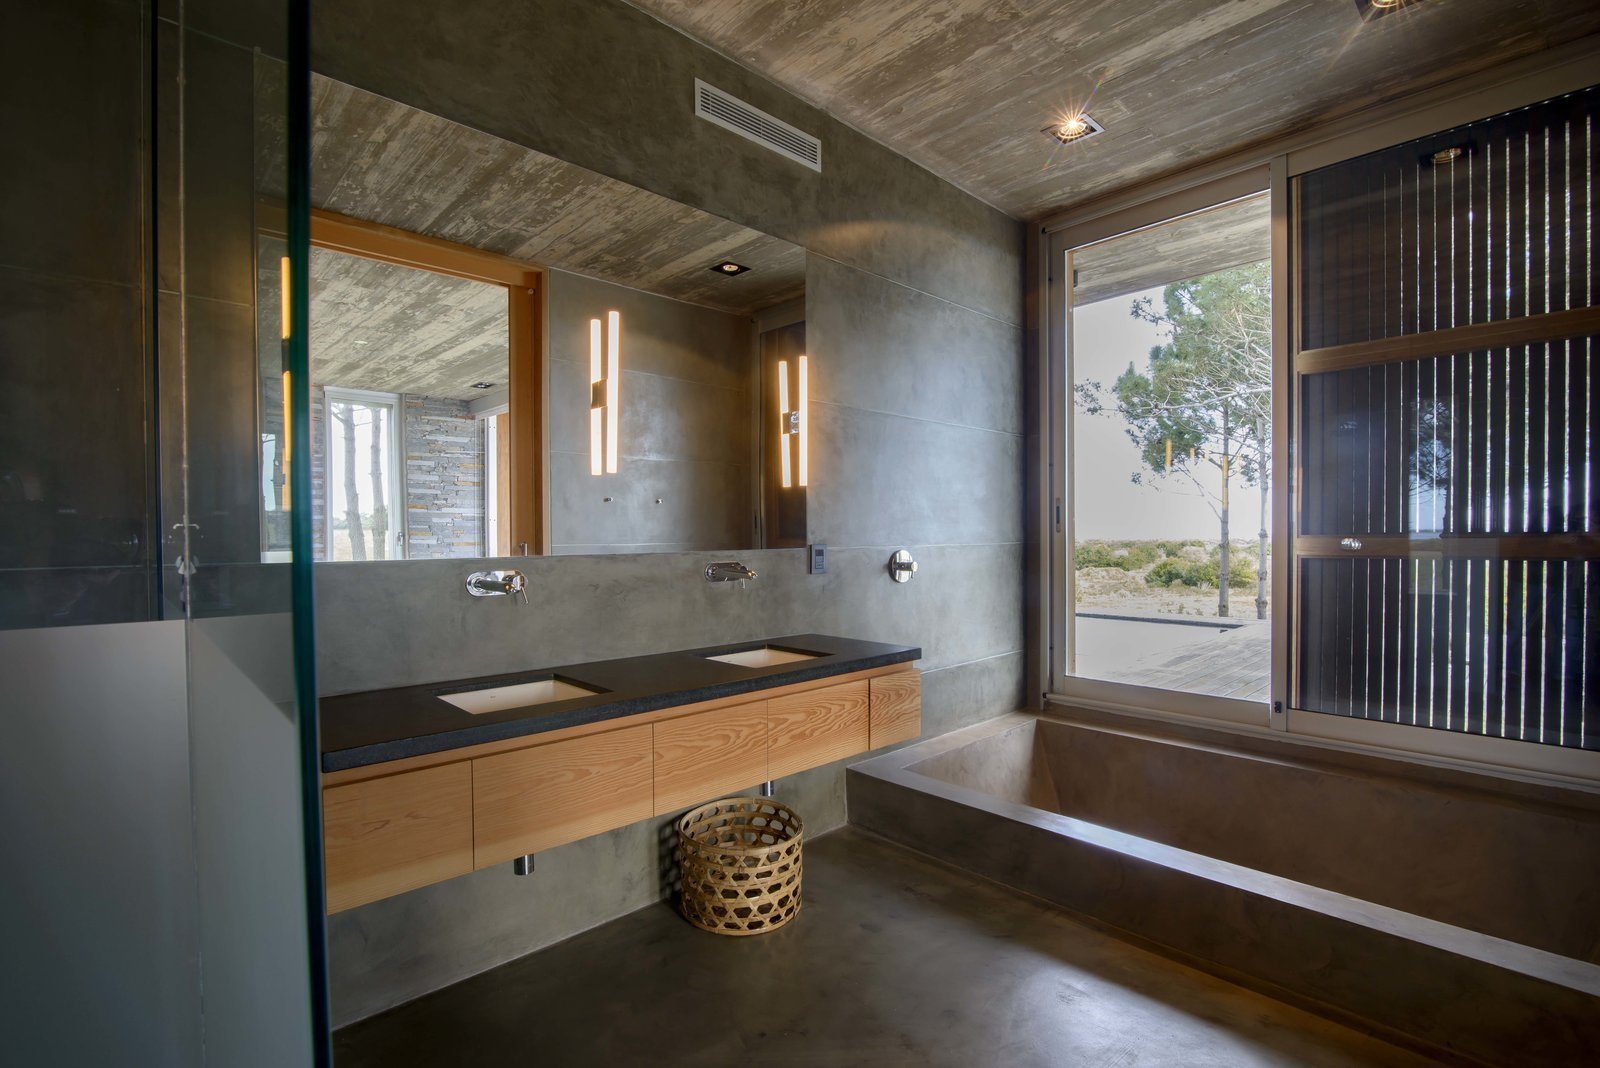 Bath Room, Stone Tile Wall, Marble Counter, Drop In Sink, Drop In Tub, Granite Counter, Ceiling Lighting, and Wood Counter  Rückenwind